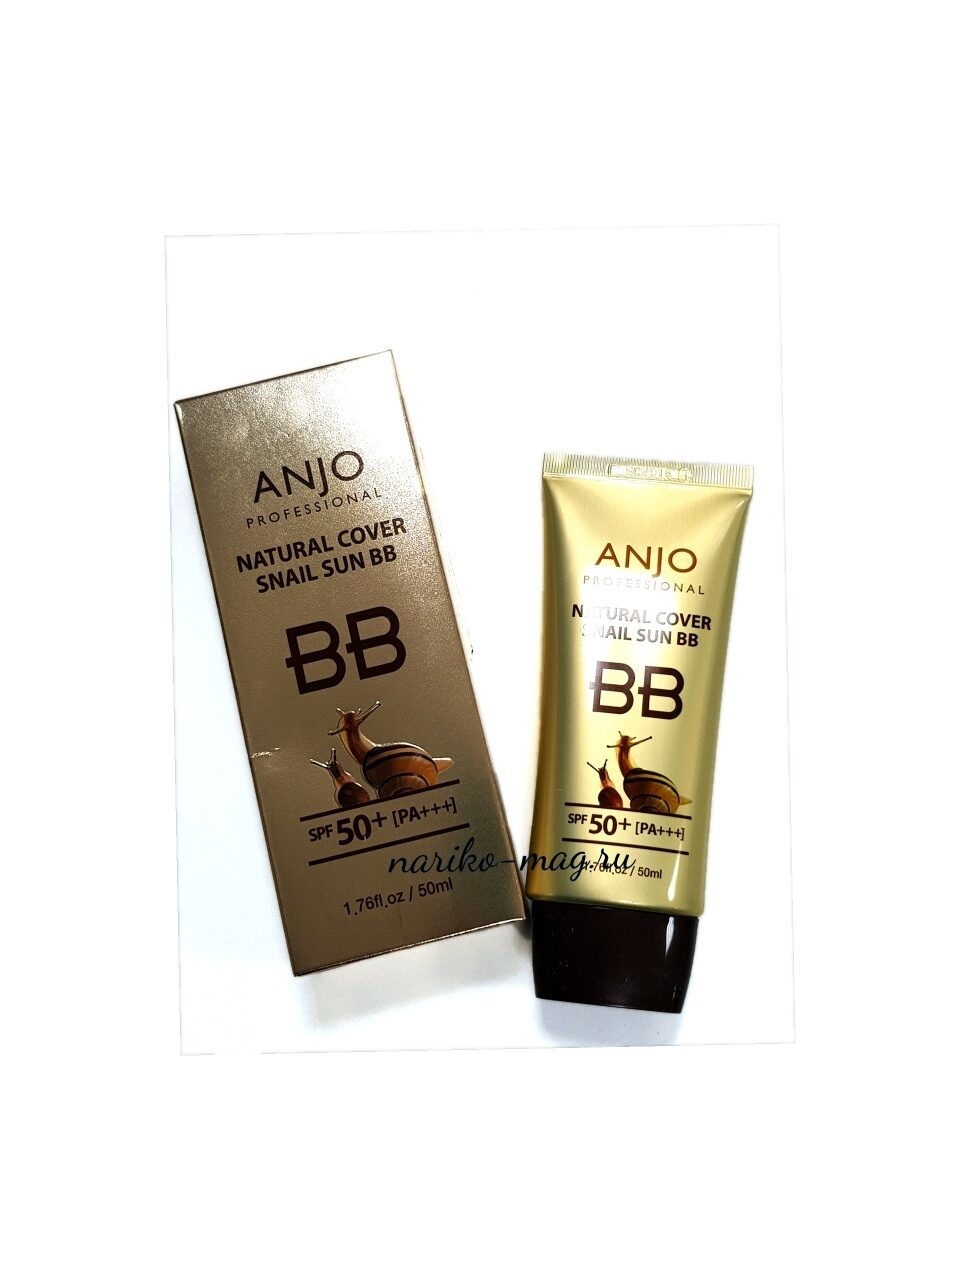 УЛИТОЧНЫЙ МУЦИН BB крем для лица ANJO Professional Natural Cover Snail Sun BB SPF50+PA+++, 50 мл.